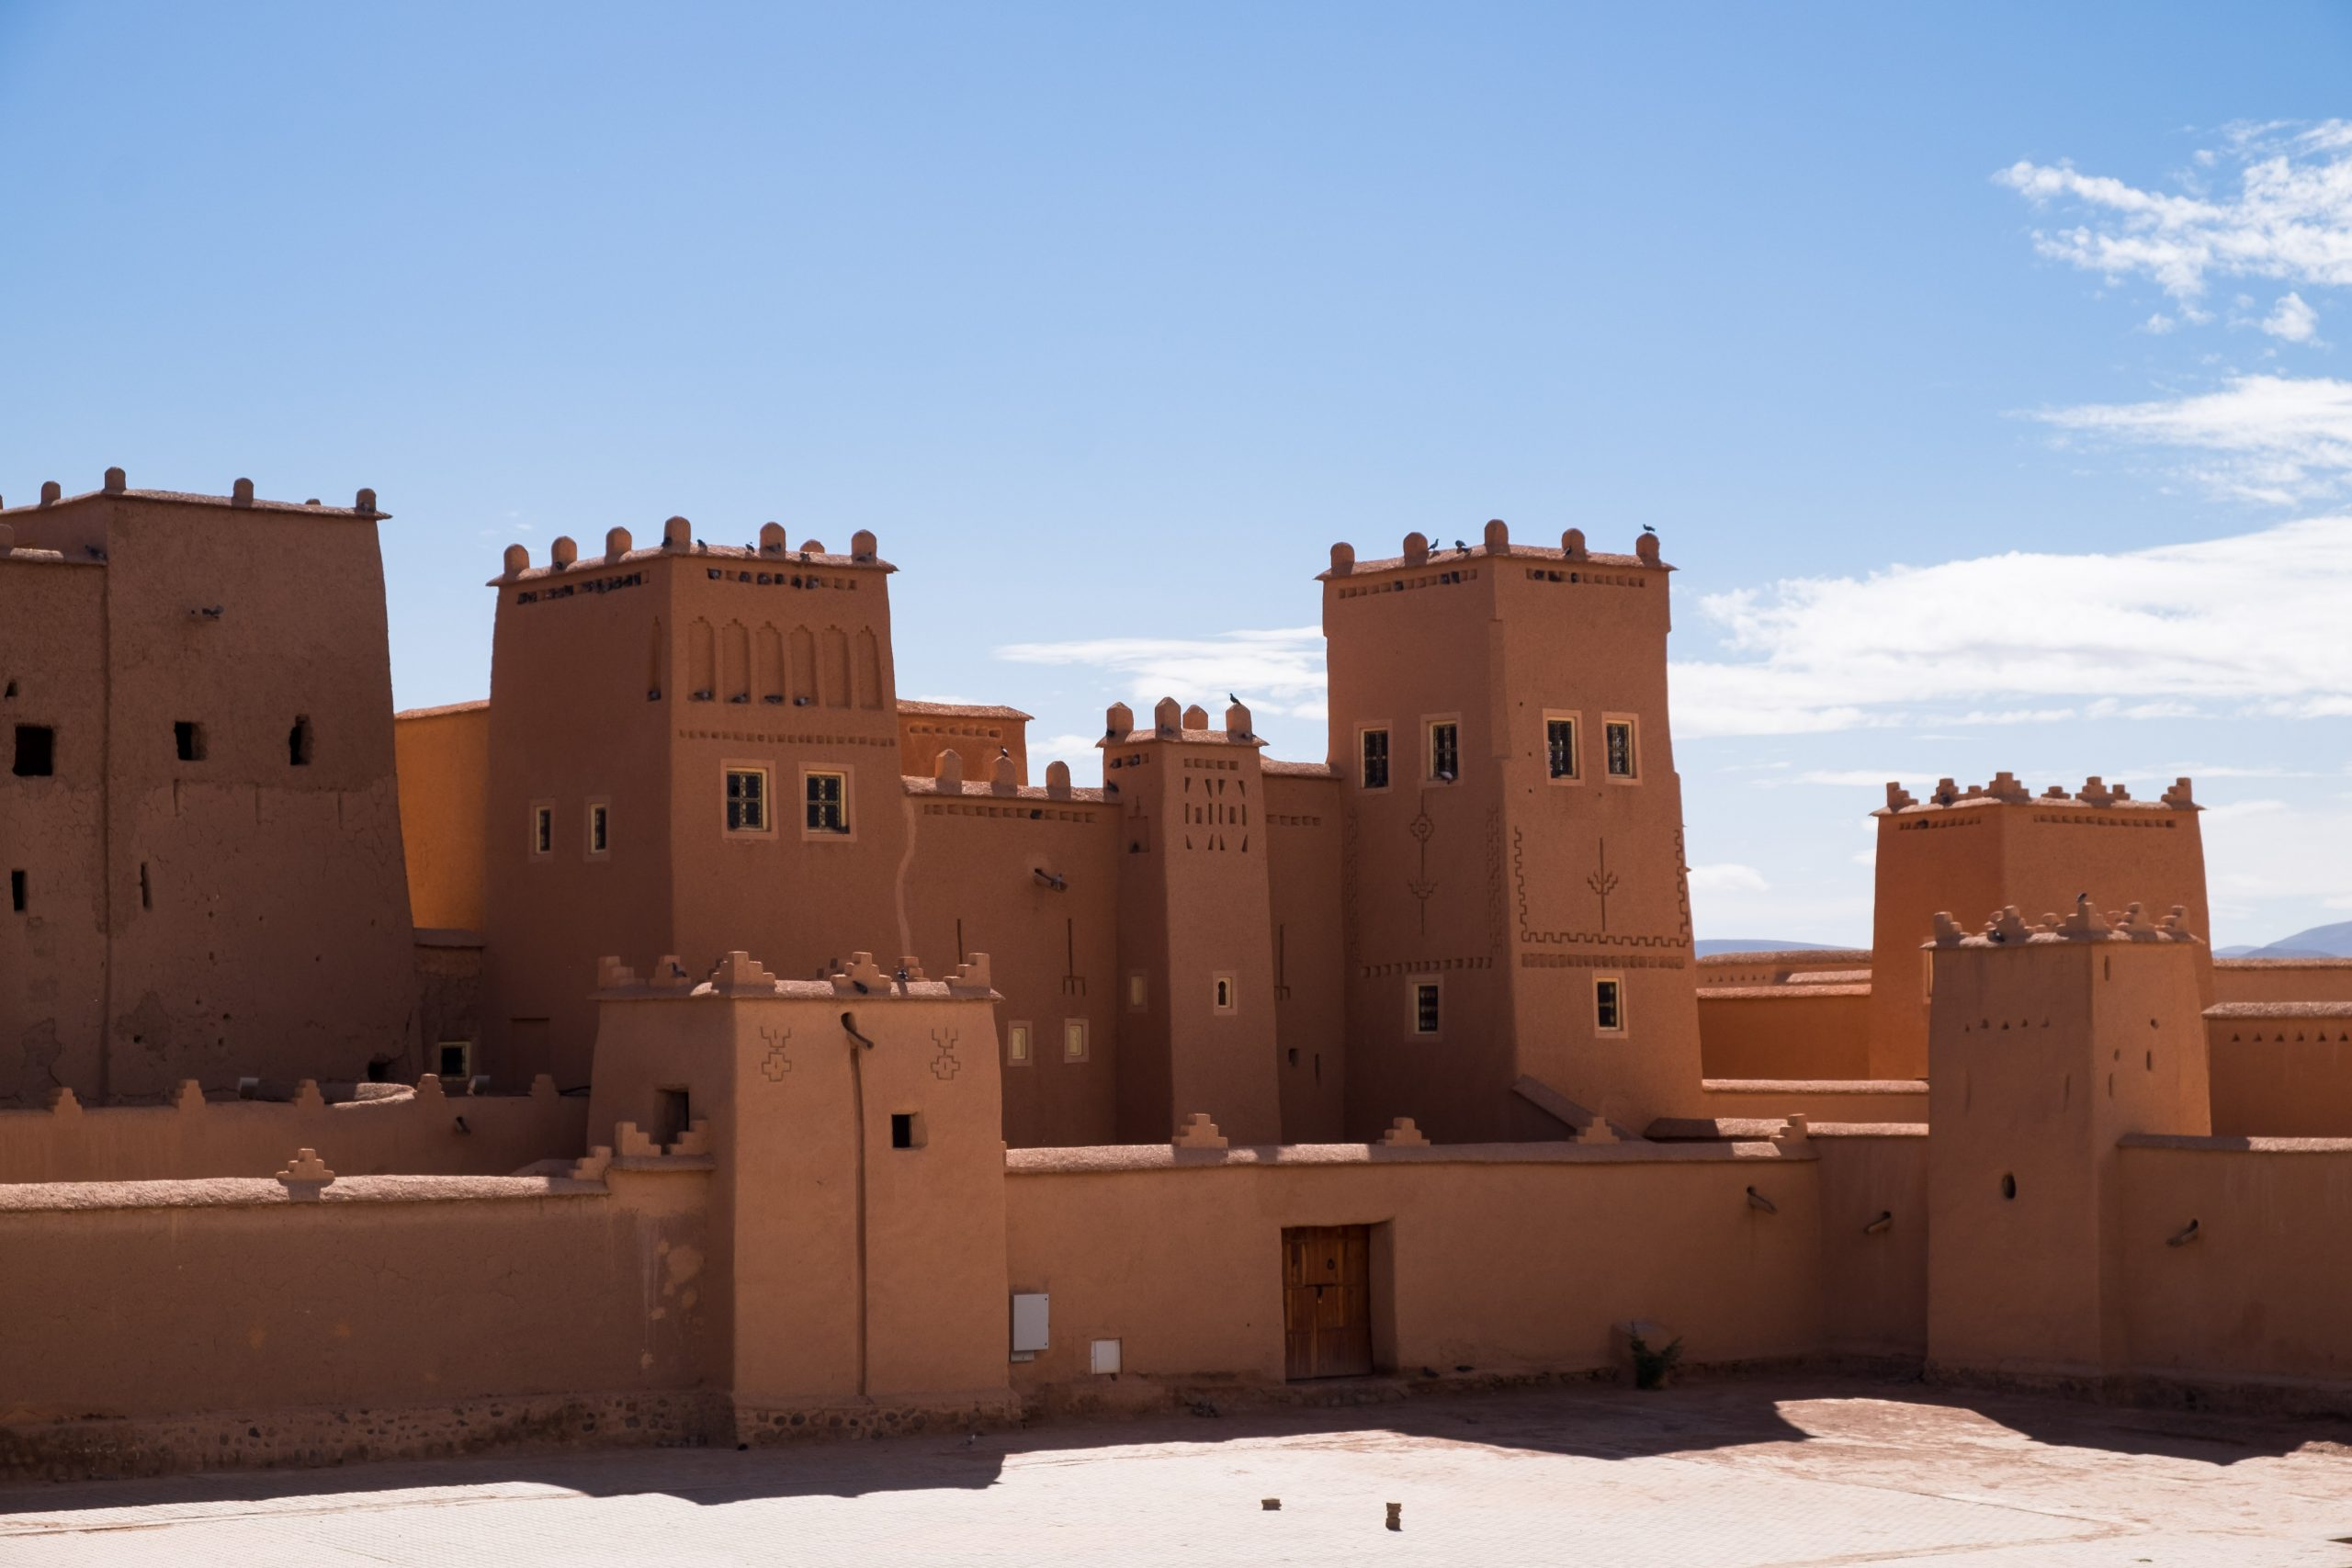 gallery image for 3 Day Private Tour Sahara Desert From Marrakech